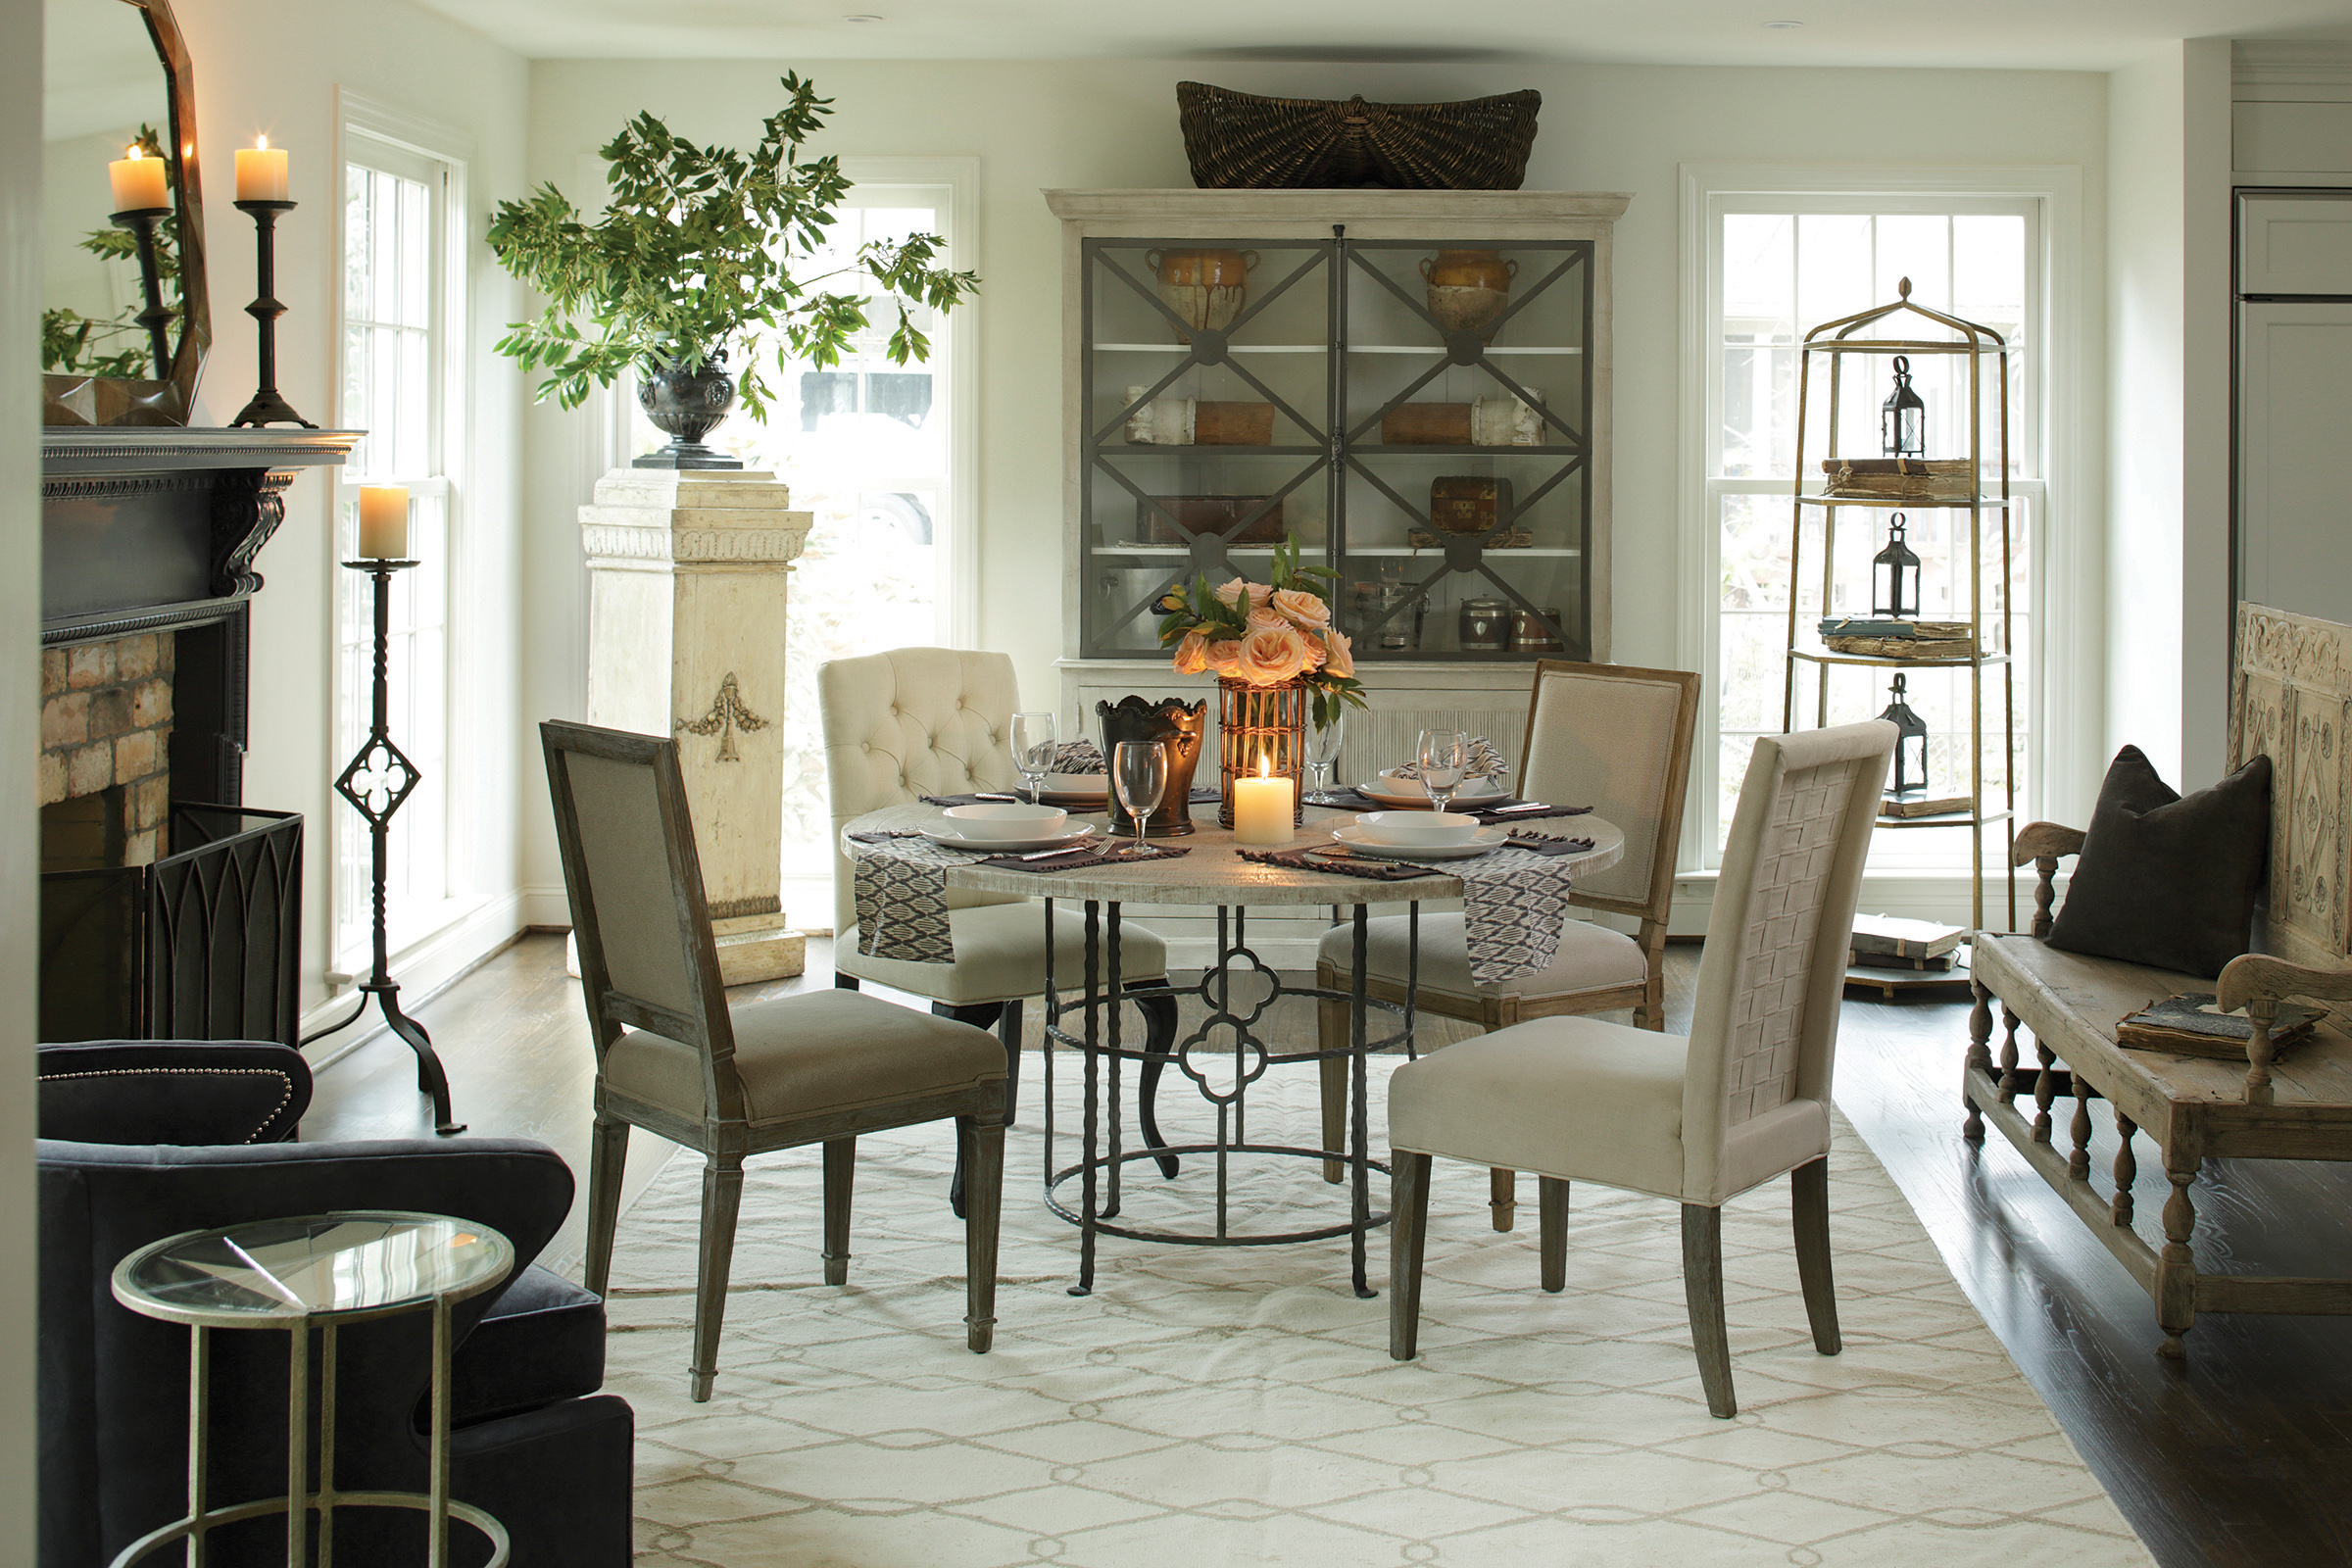 Transitional dining room - Conversational Chic Vintage Modern Meets Eclectic Furniture